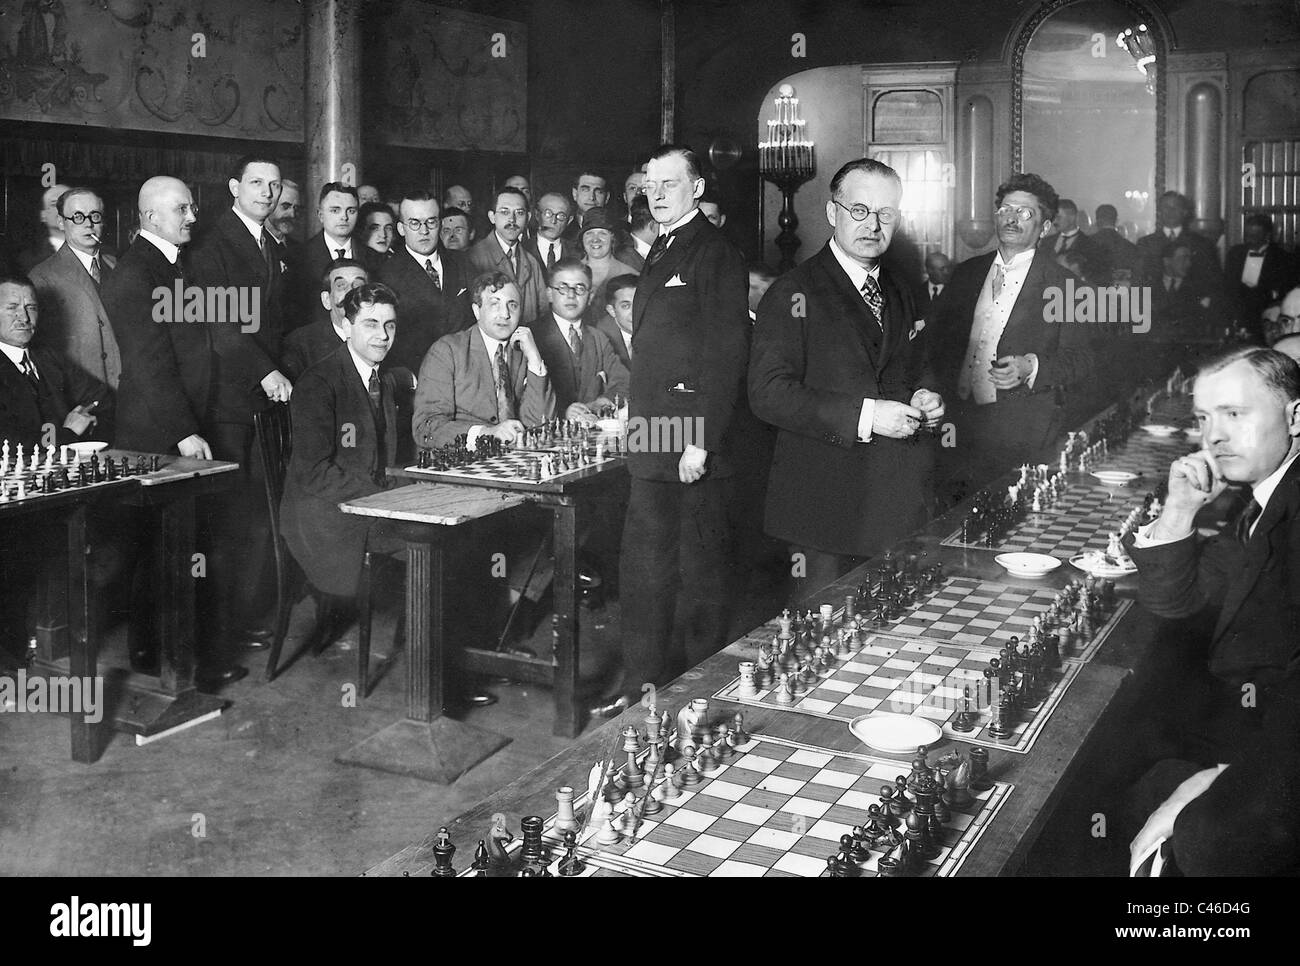 Alexander Alekhine playing simultaneous chess, 1926 - Stock Image